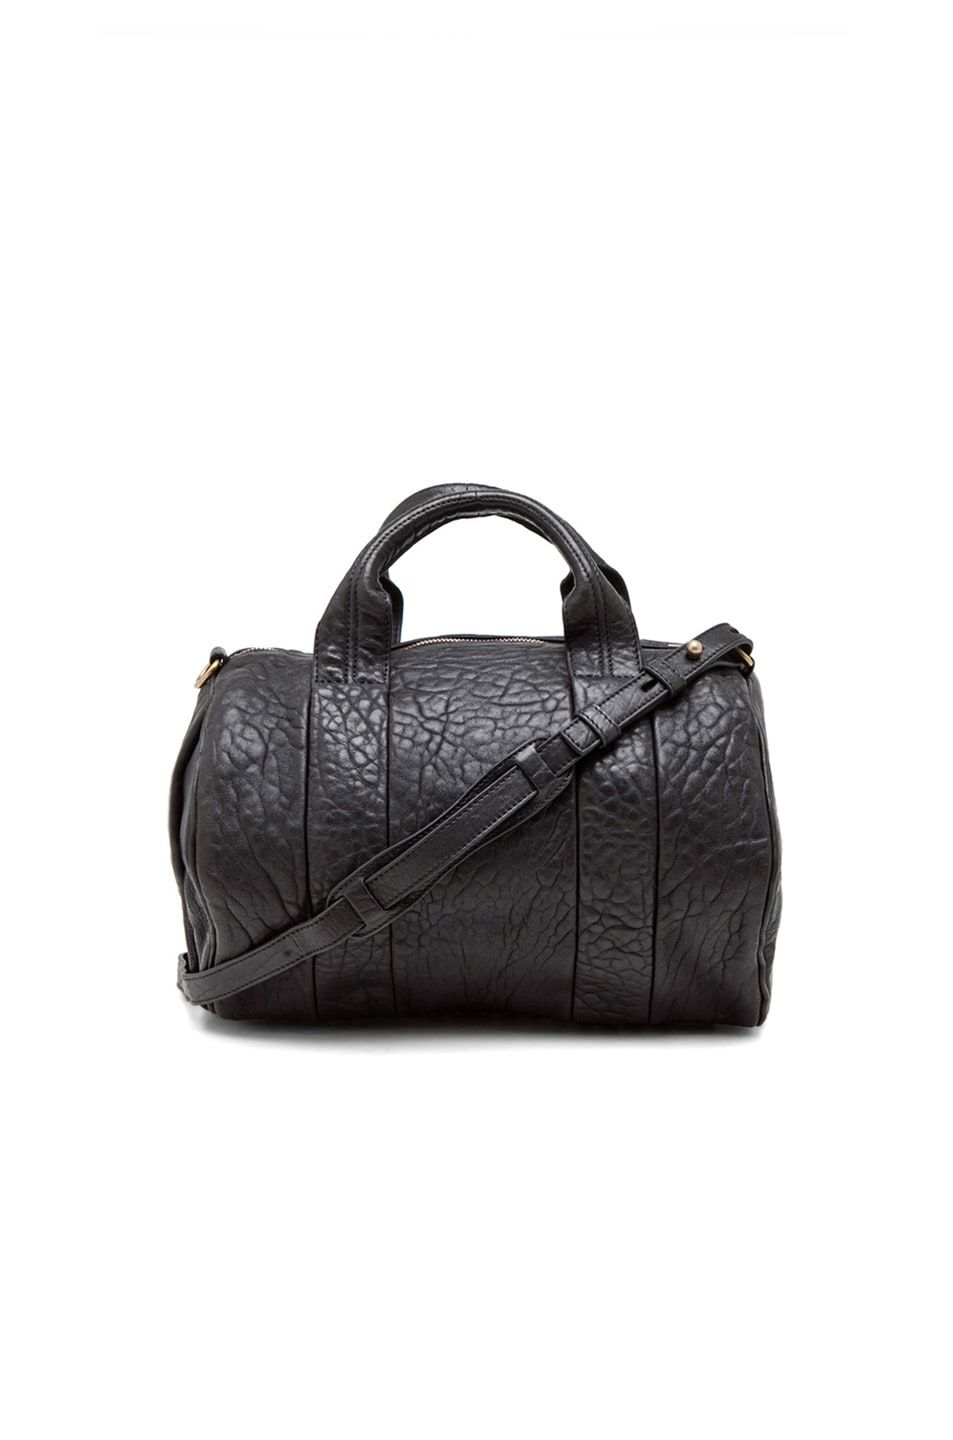 Image 1 of Alexander Wang Rocco Satchel with Gold Hardware in Black